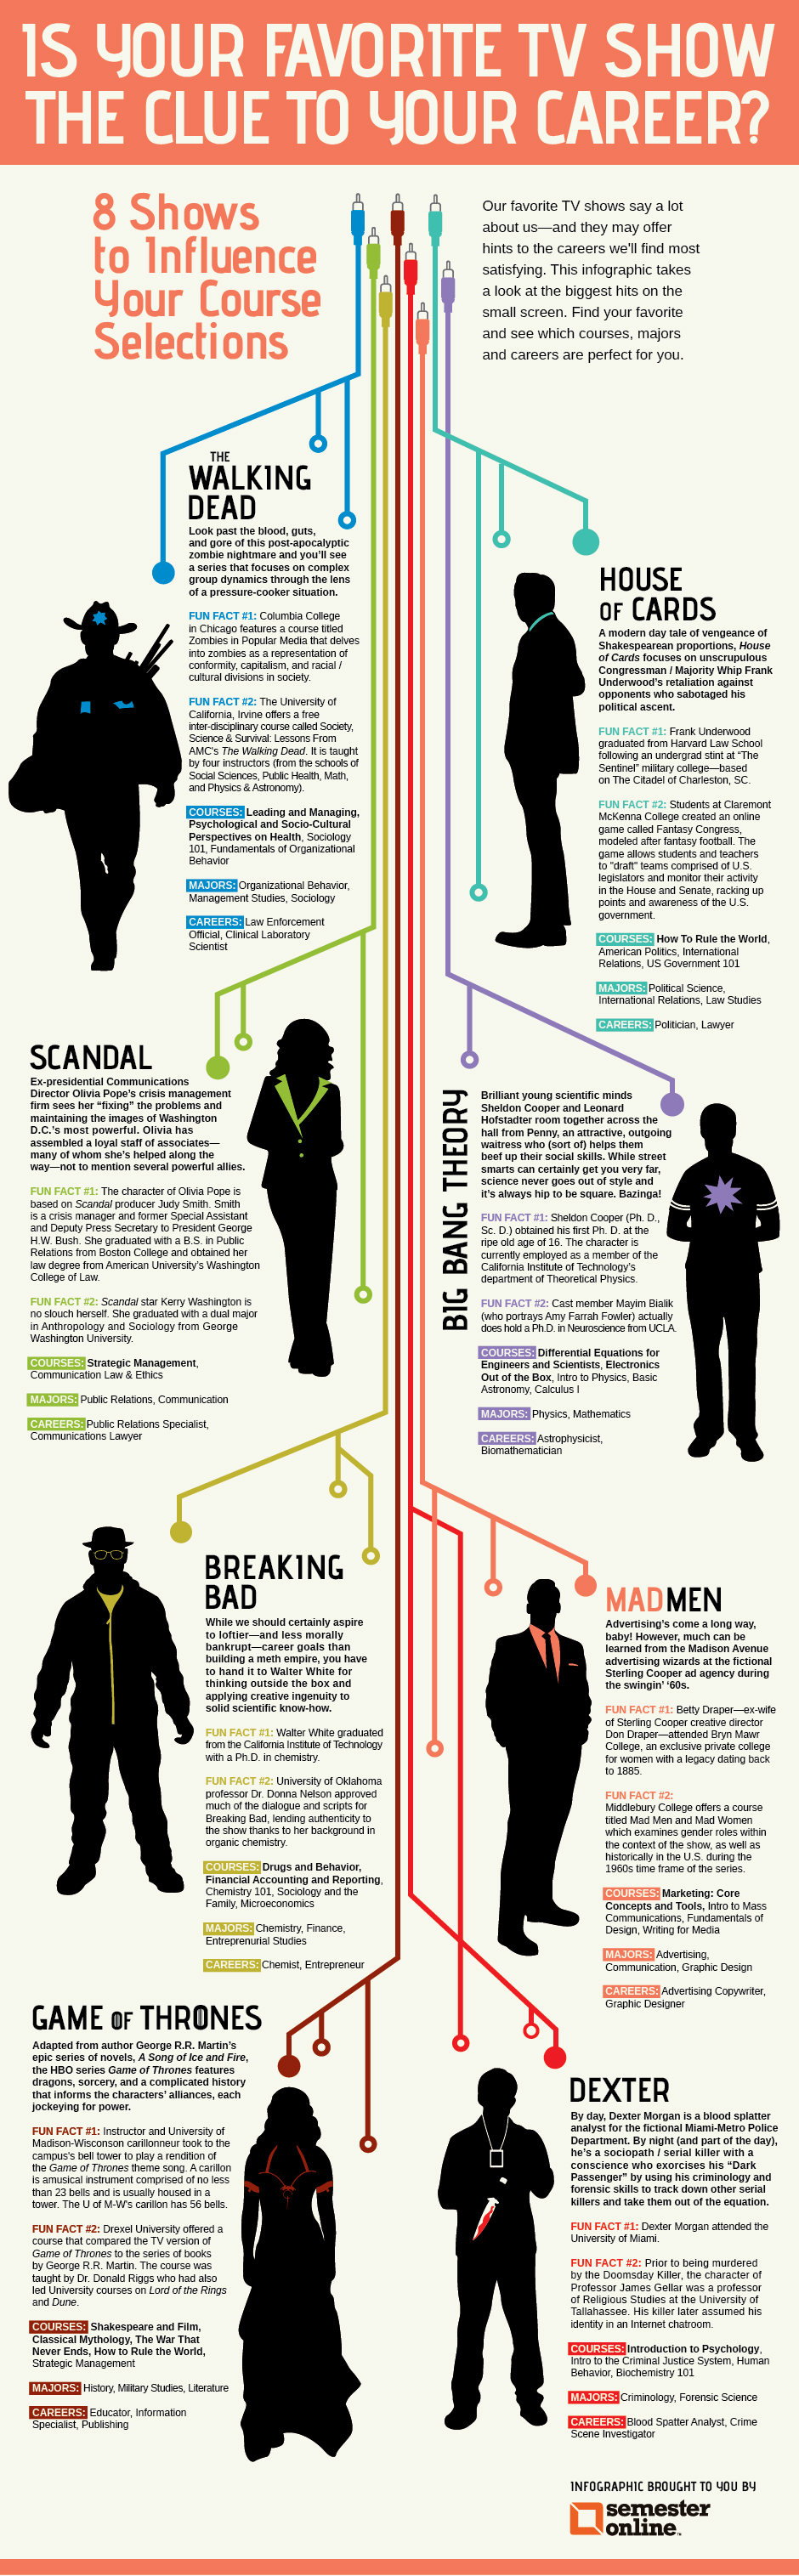 Pin By Jobcluster On Job Search Info Post To This Board Career Choices Favorite Tv Characters Career Exploration